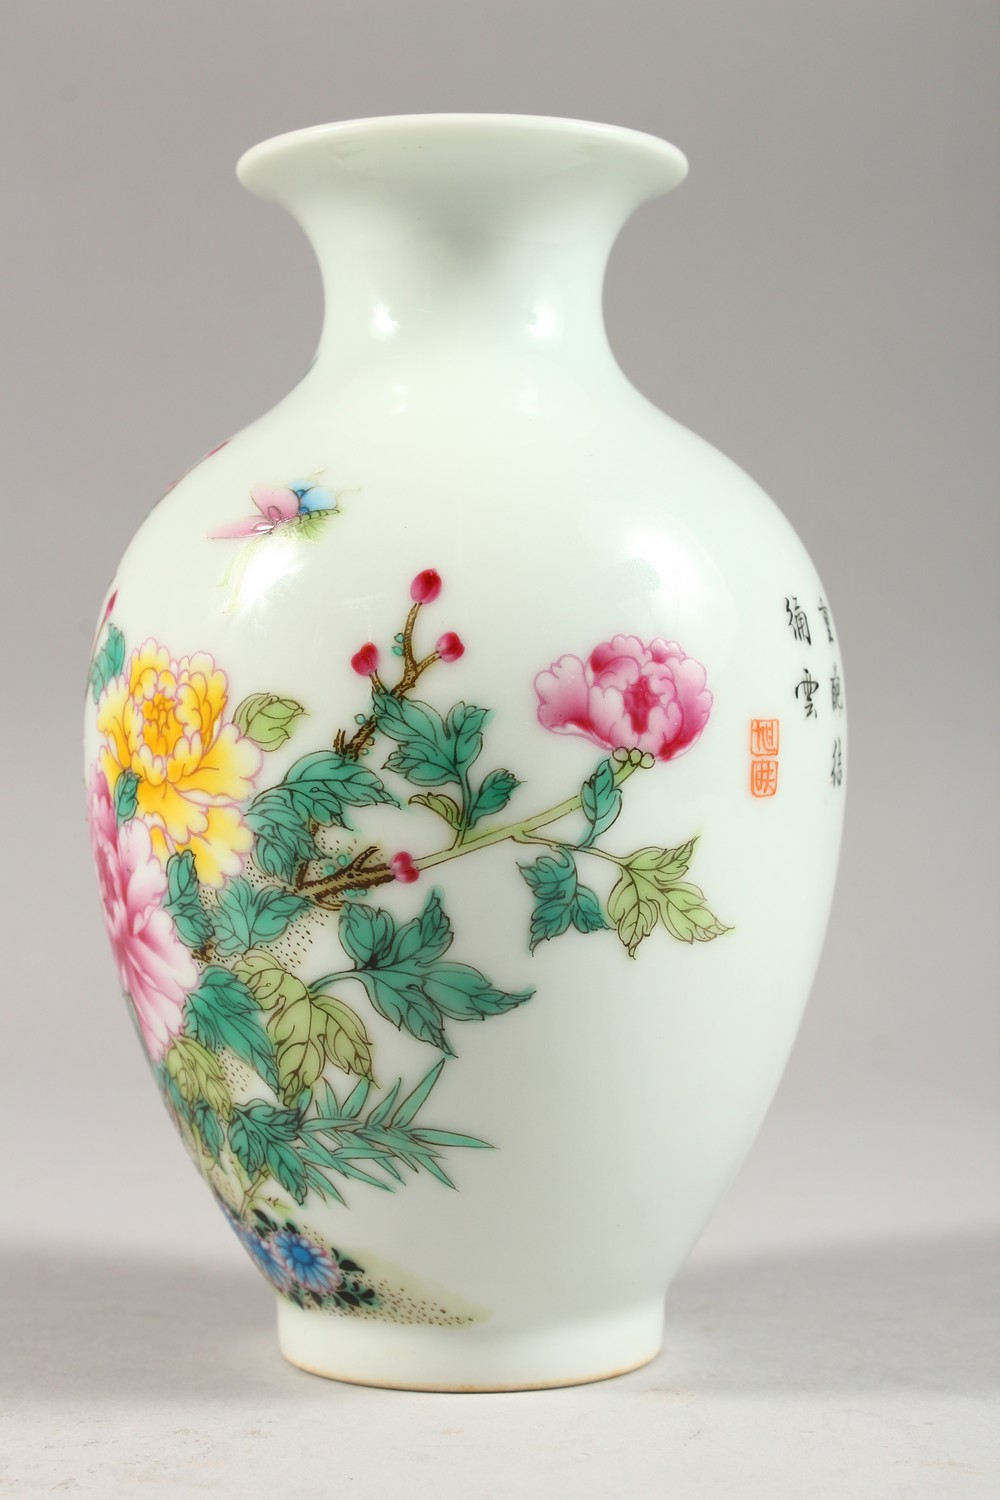 A GOOD CHINESE REPUBLIC STYLE FAMILLE ROSE PORCELAIN VASE, the body decorated with scenes of birds - Image 3 of 8